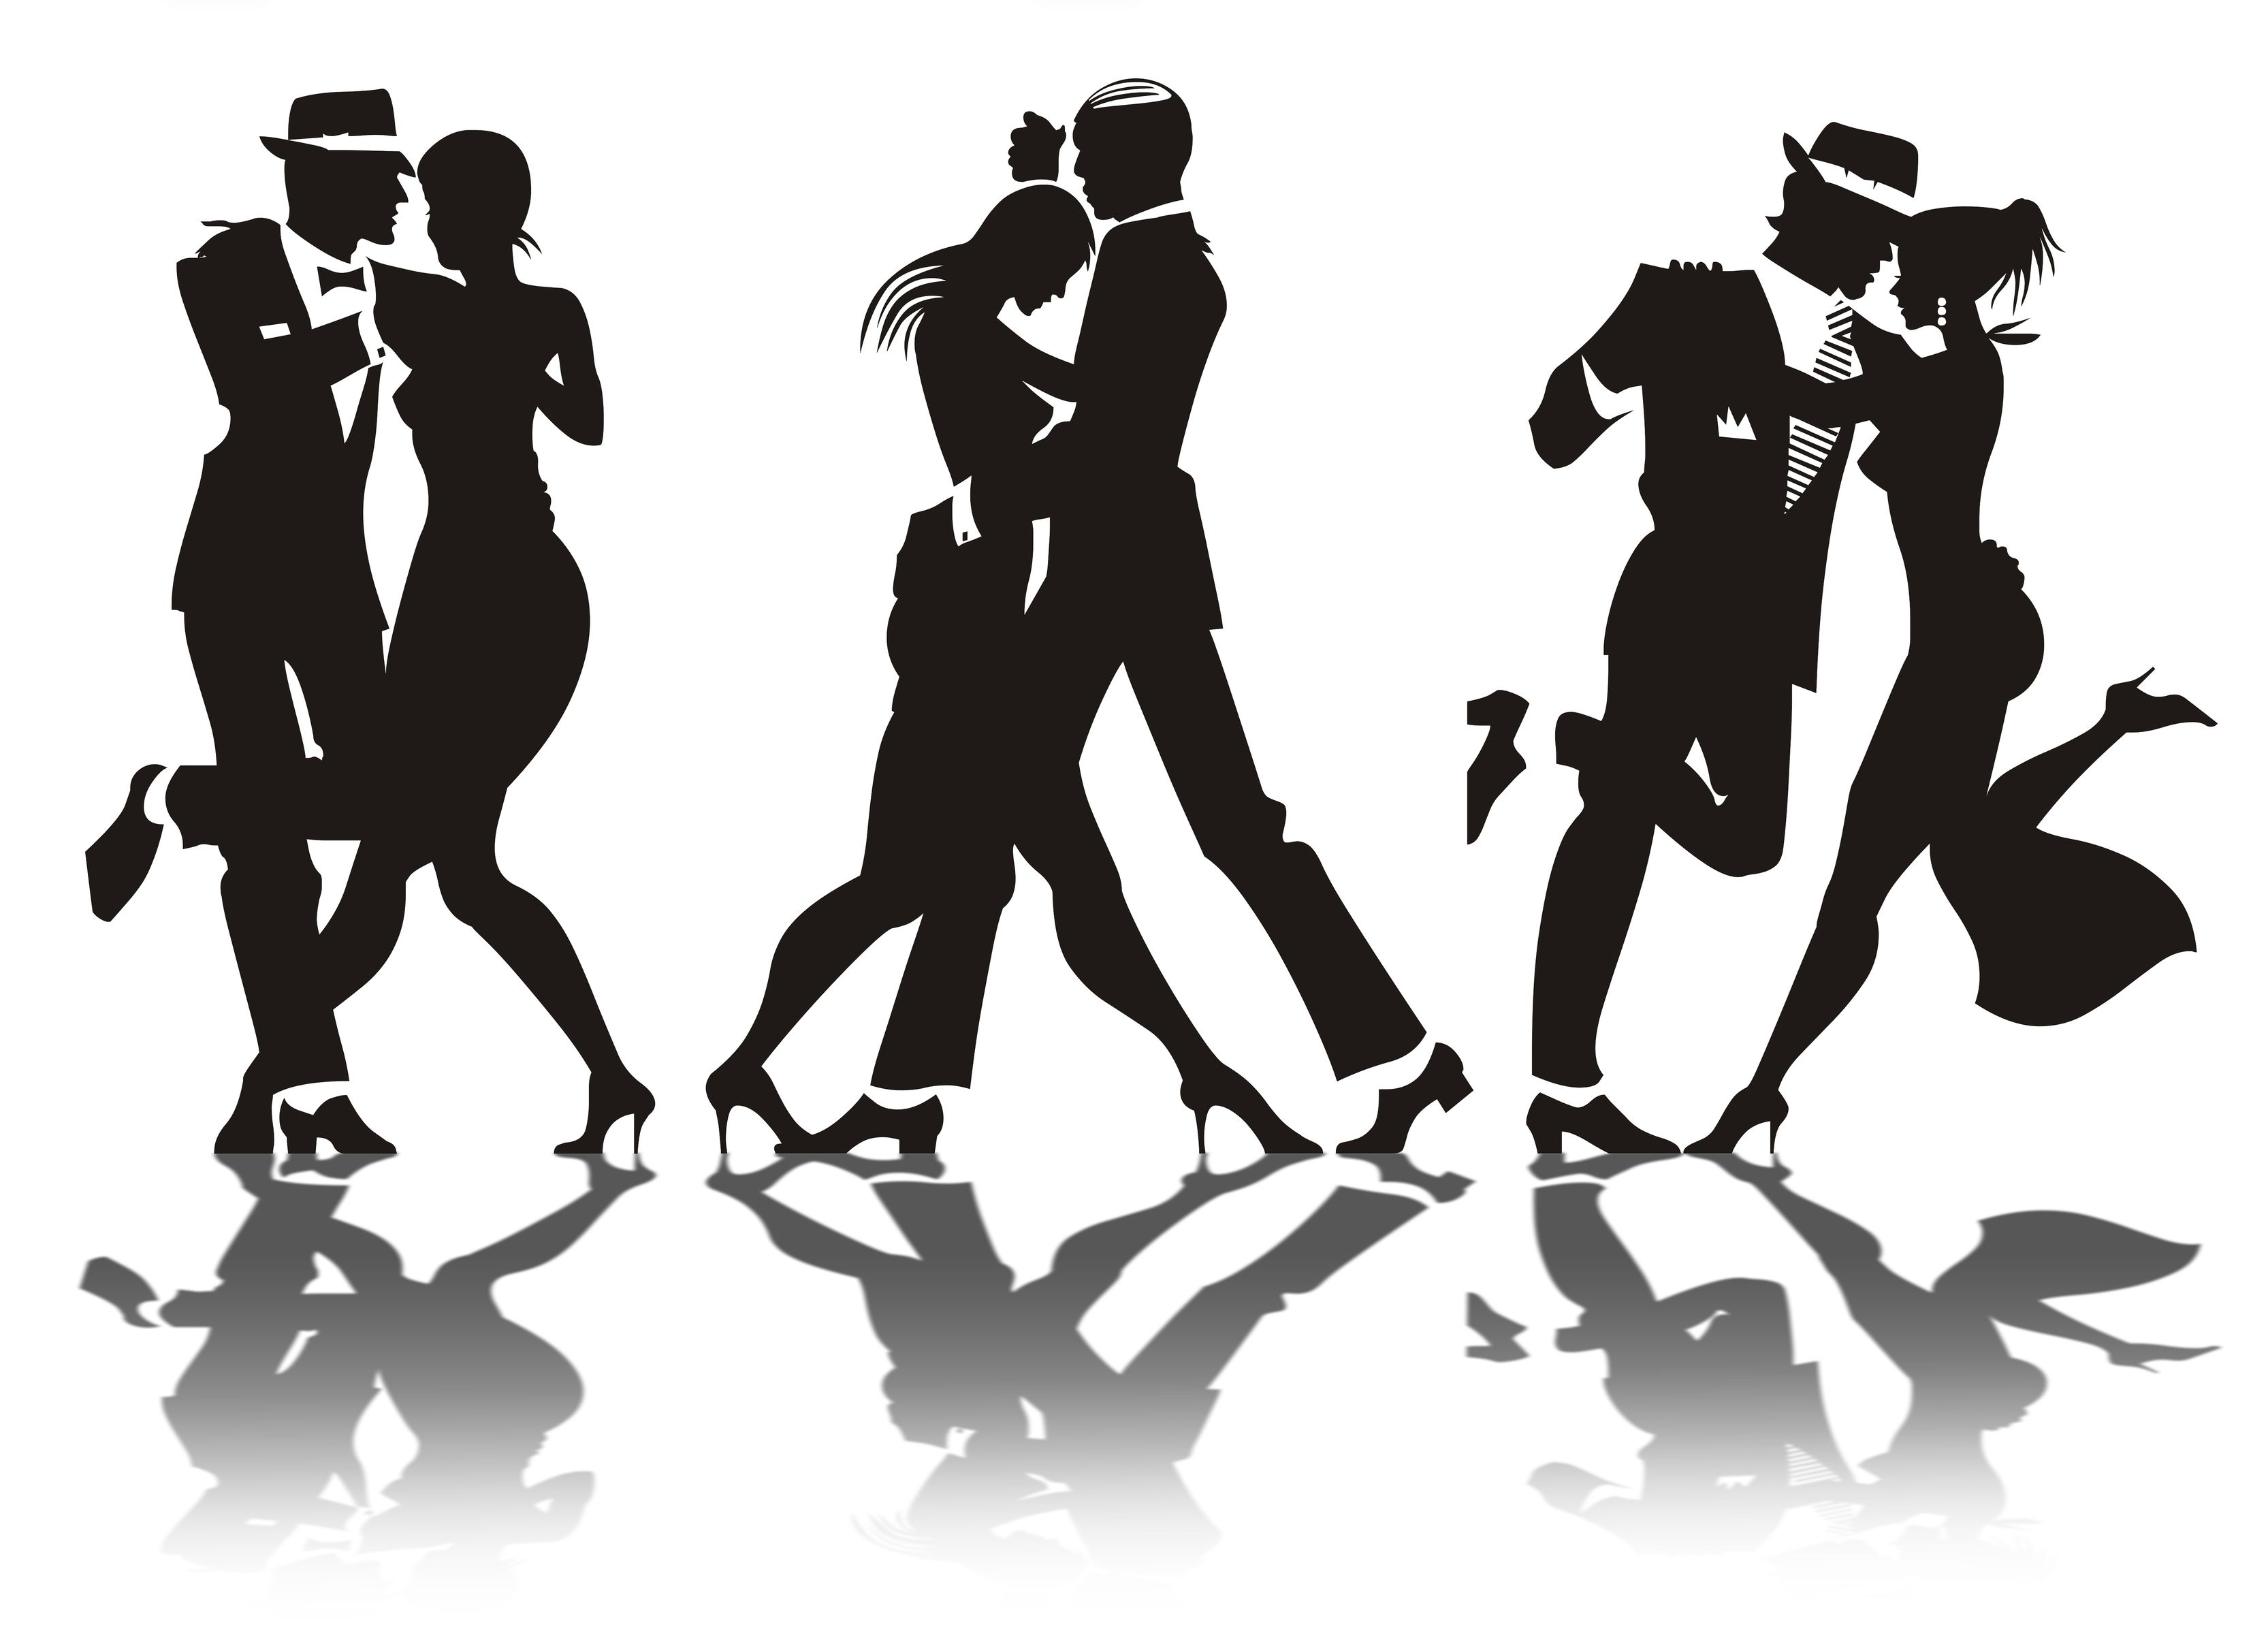 speakeasy silhouette - Google Search | Wedding decor | Pinterest ...